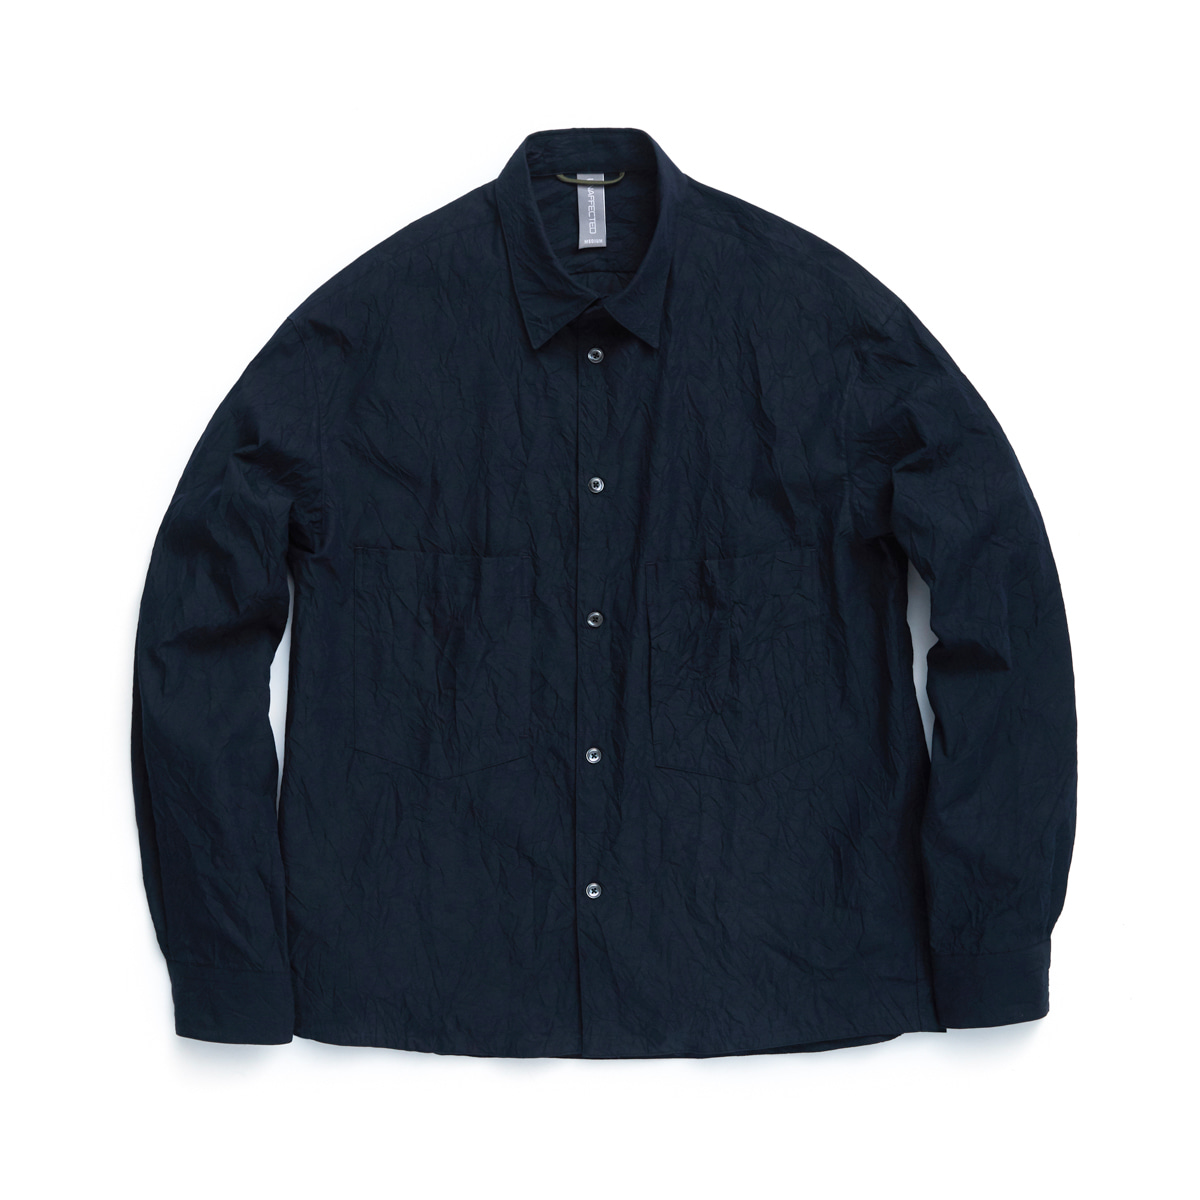 [UNAFFECTED] OVERSIZED SHIRT 'NIGHT NAVY'